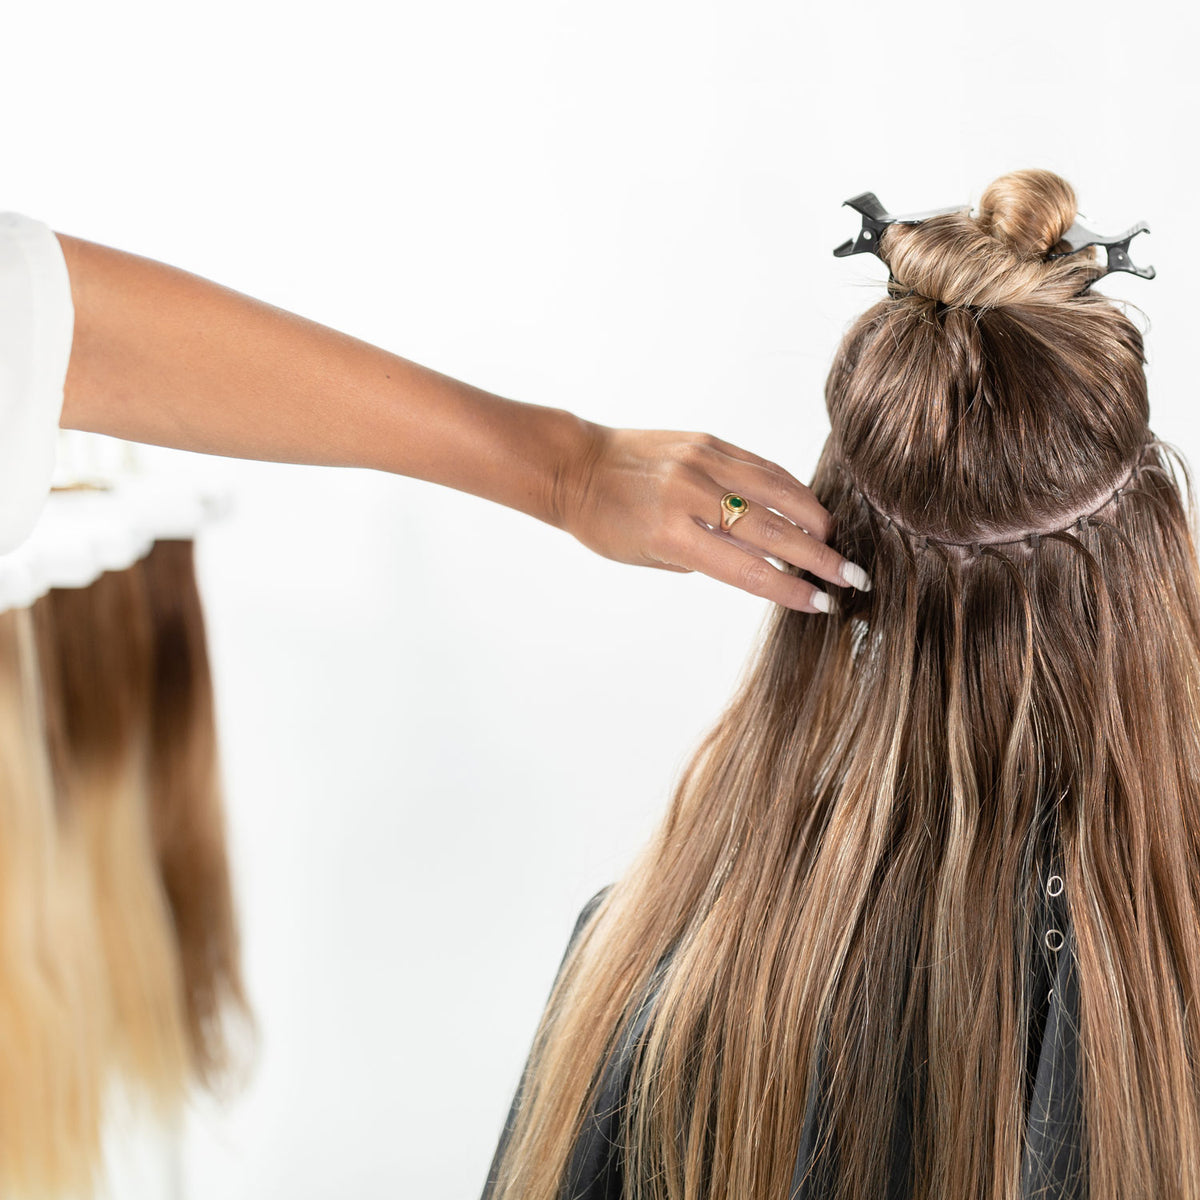 Laced Hair Beaded Weft Extension Training Course (Merrick, NY)